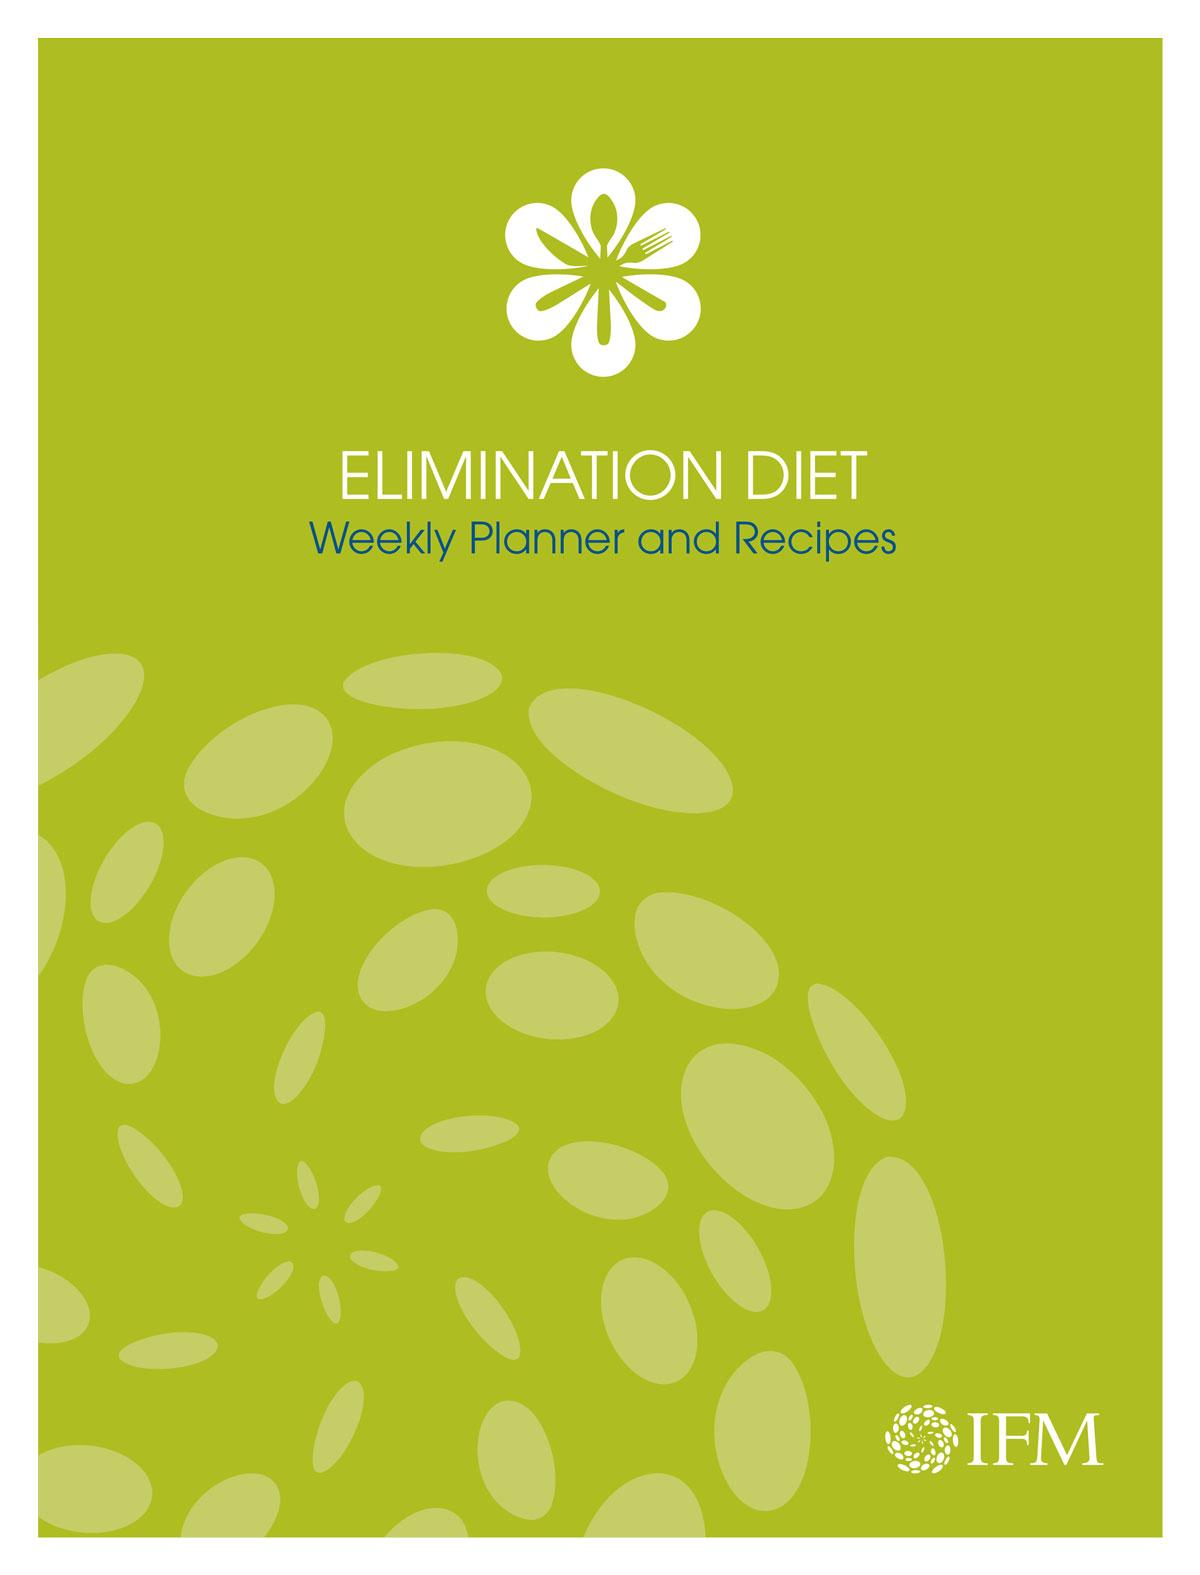 Elimination Diet Weekly Planner